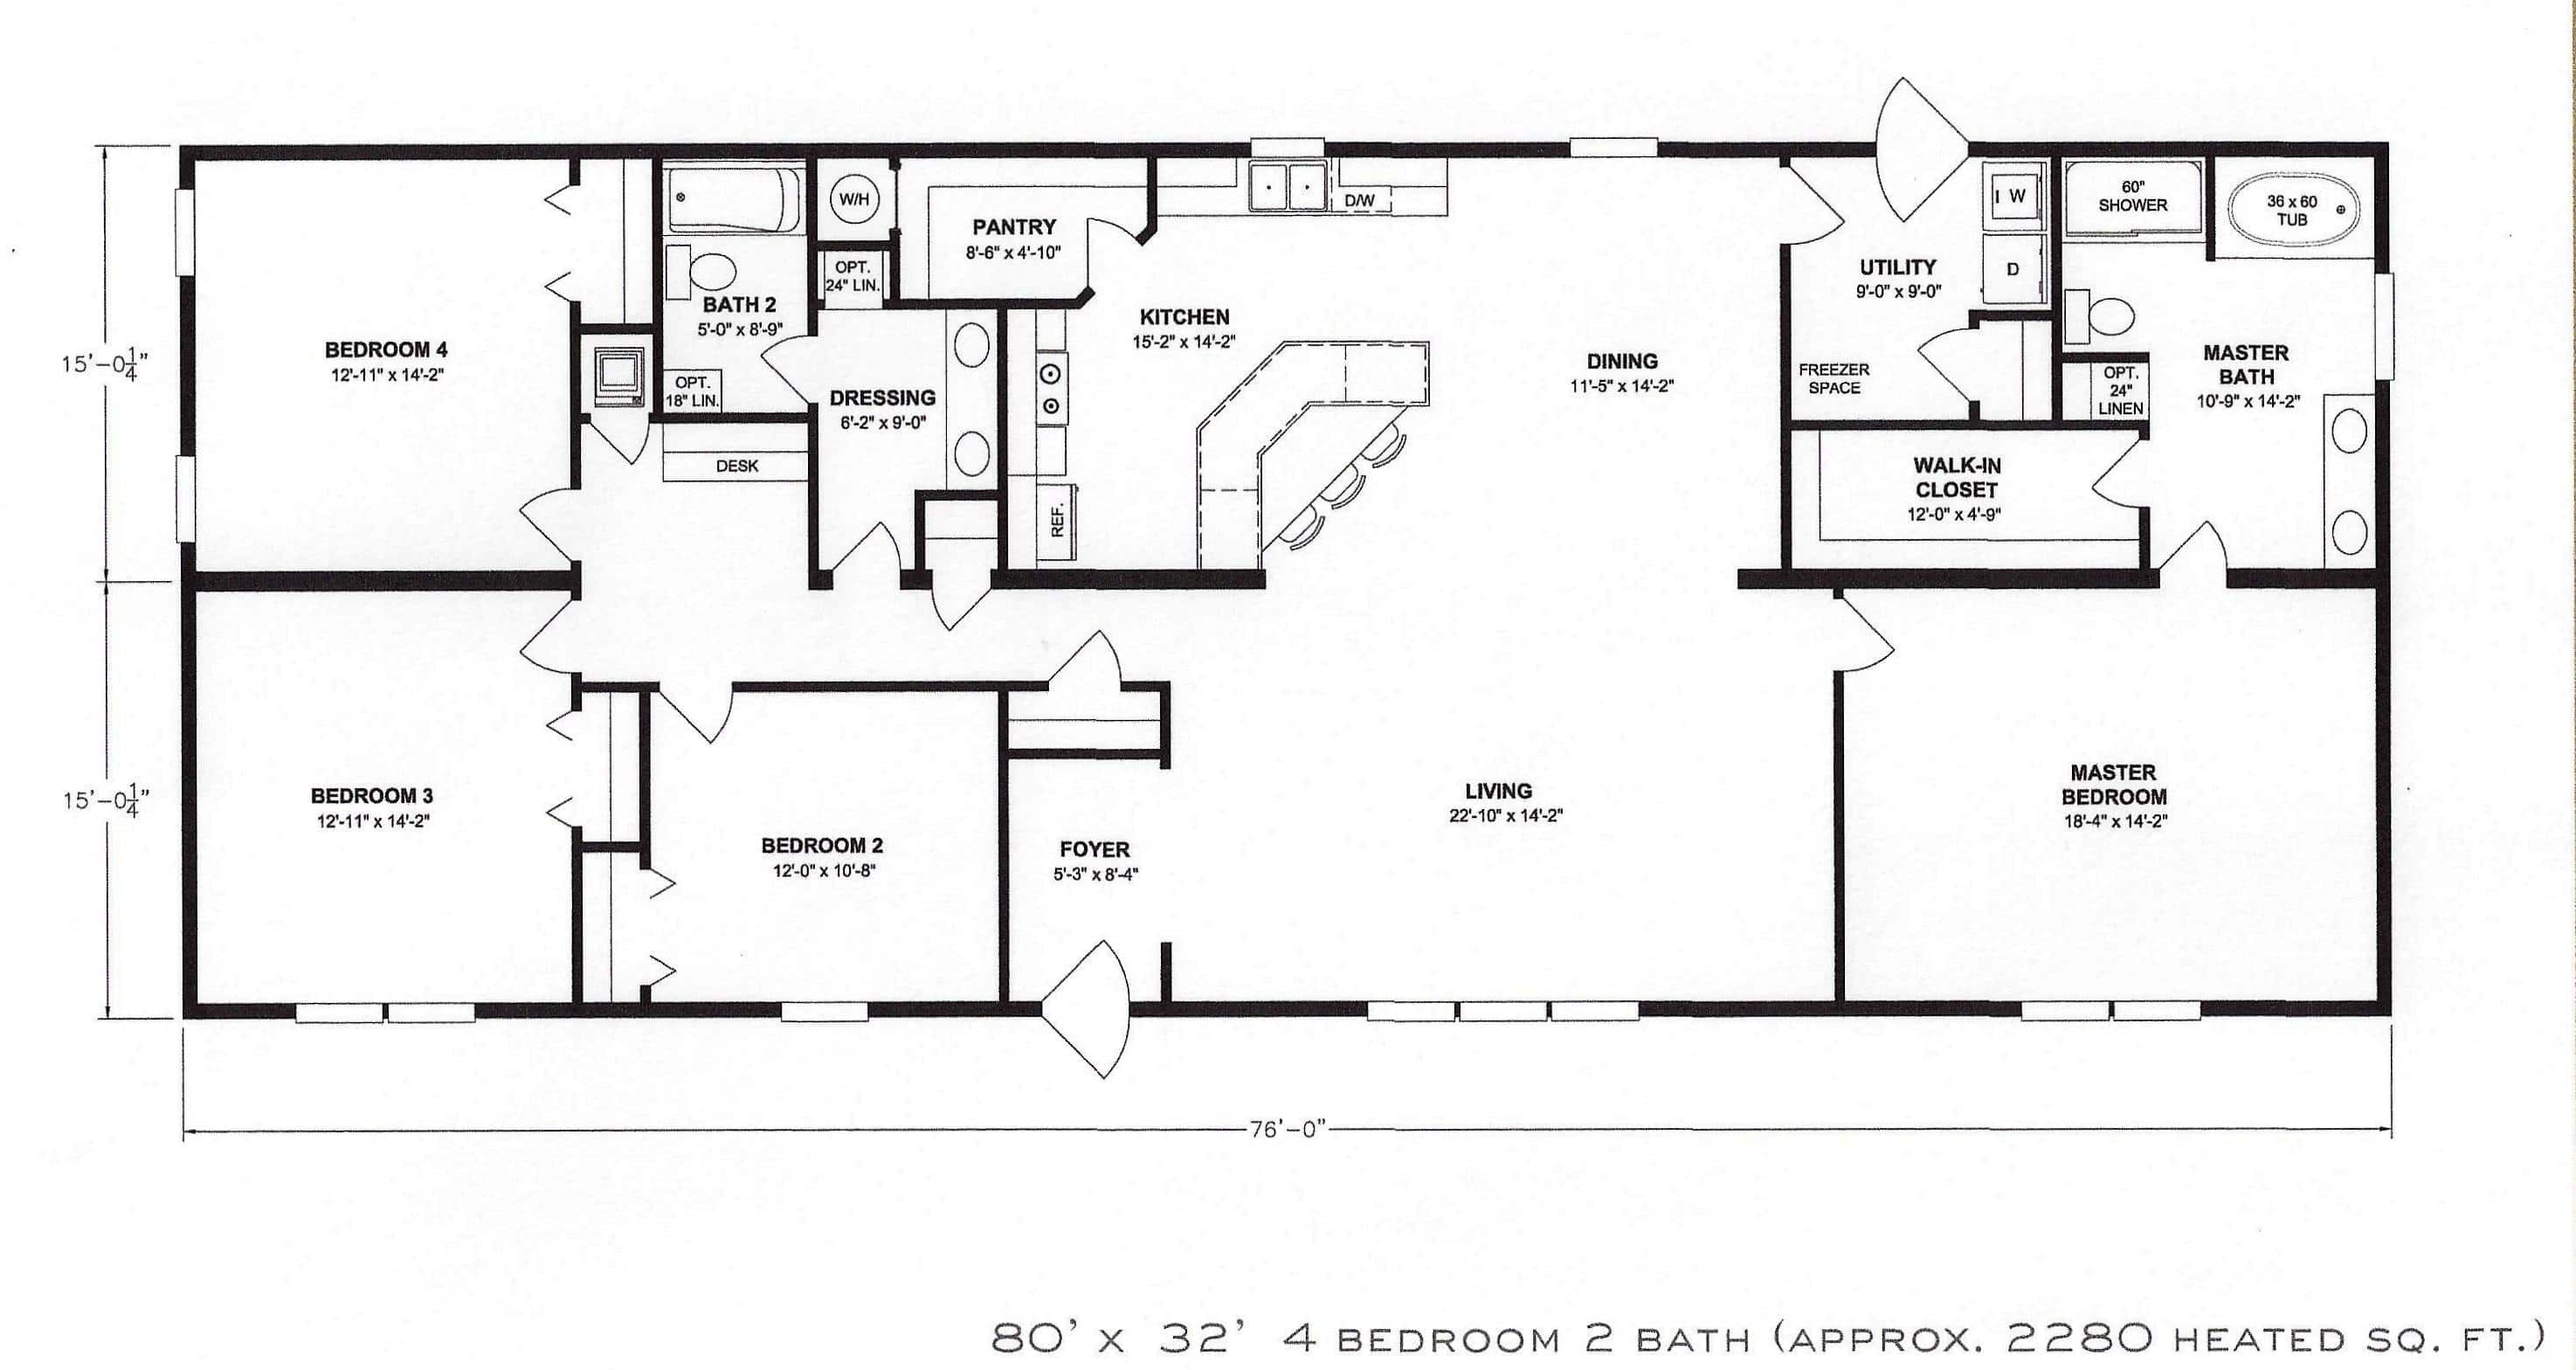 4 bedroom floor plan f 1001 hawks homes manufactured modular conway little rock arkansas - Bedroom house floor plans ...